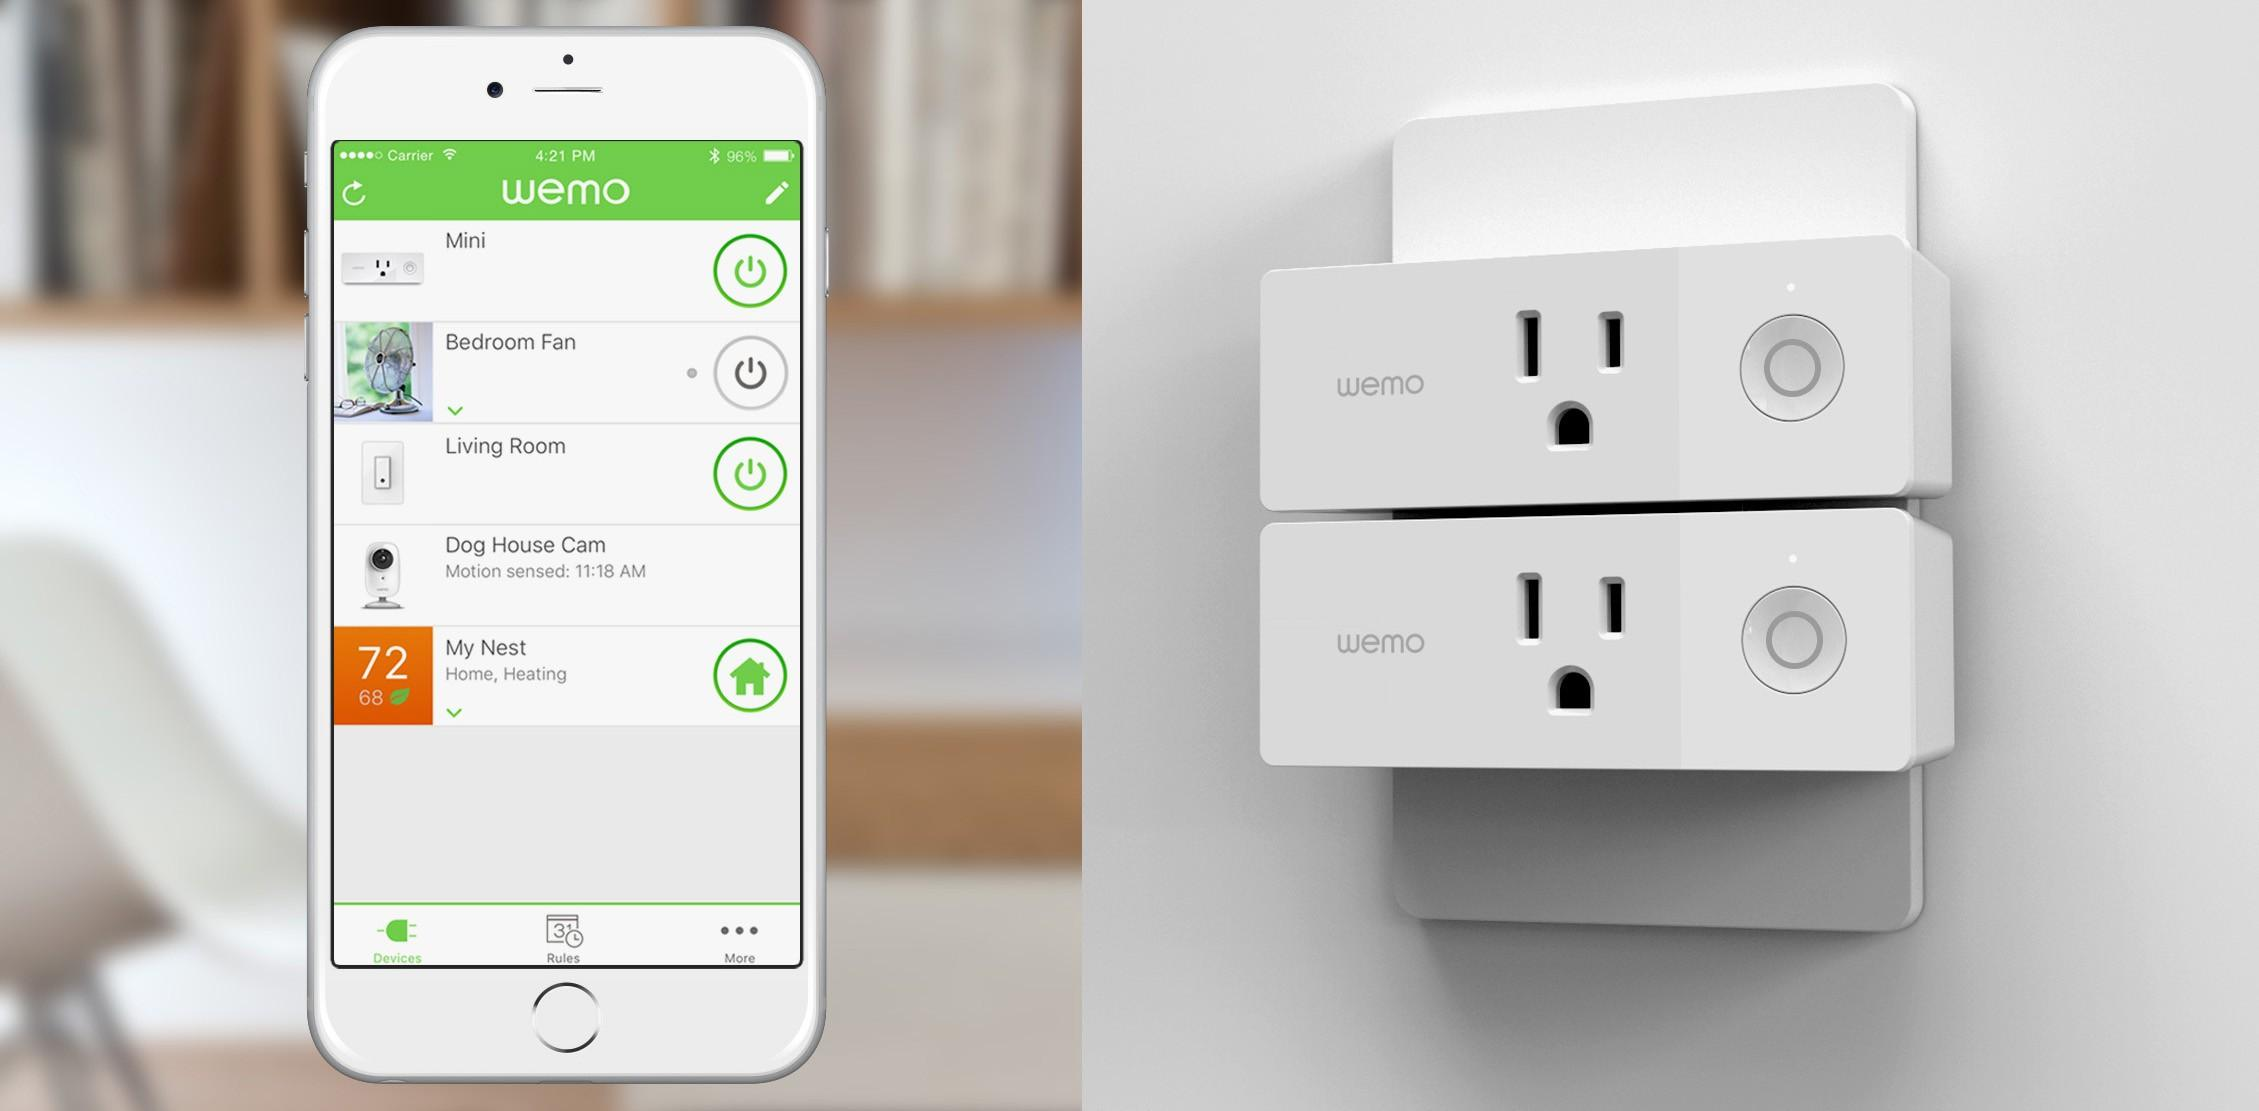 Wemo Mini Smart Plug and Dimmer Light Switch work with Nest - SlashGear